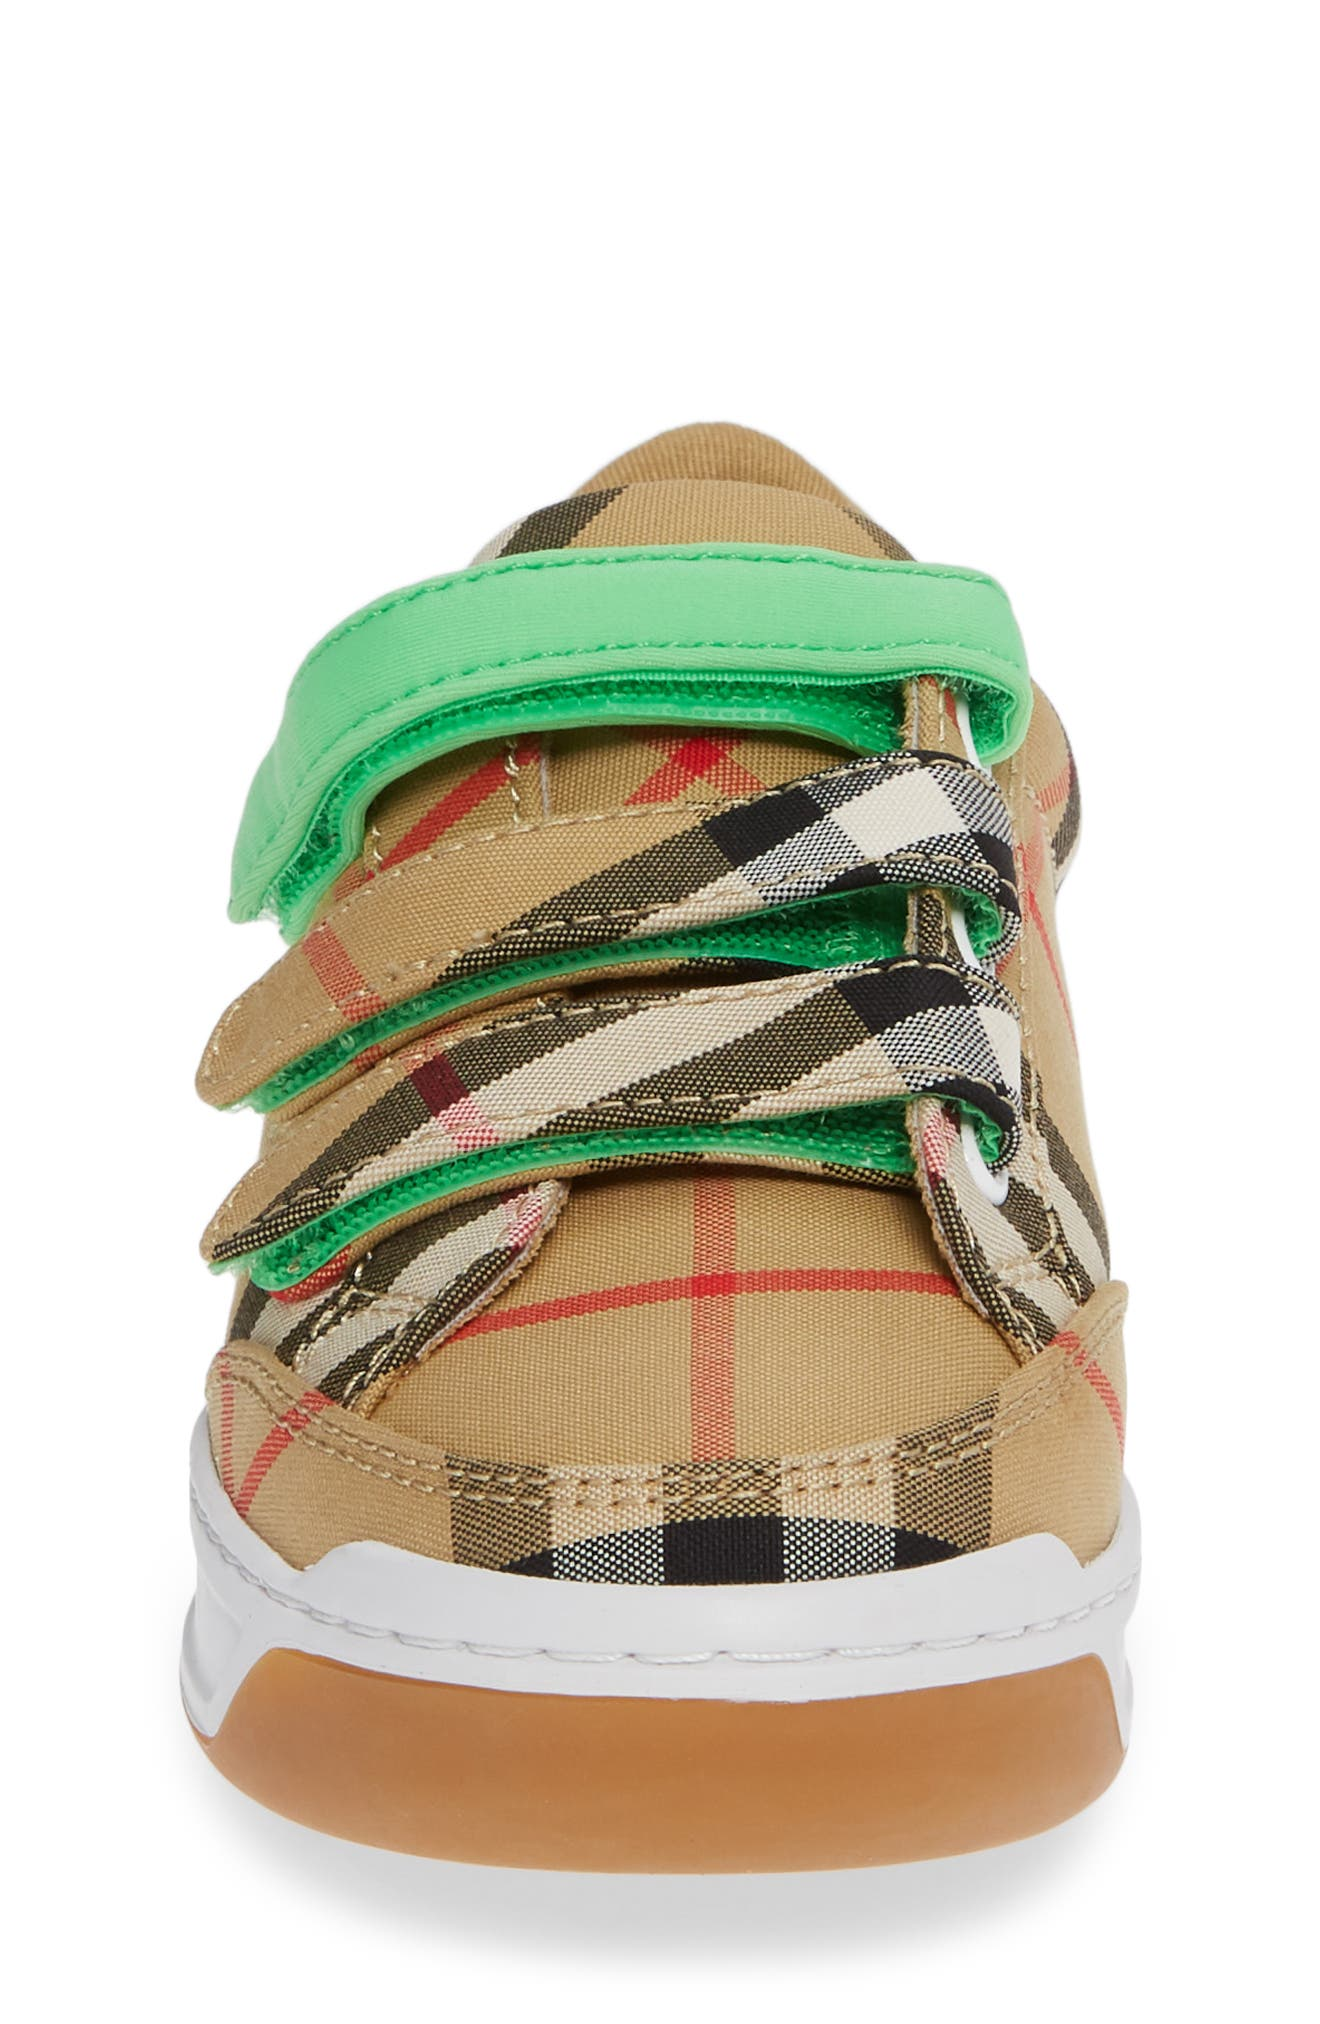 Groves Low Top Sneaker,                             Alternate thumbnail 4, color,                             NEON GREEN